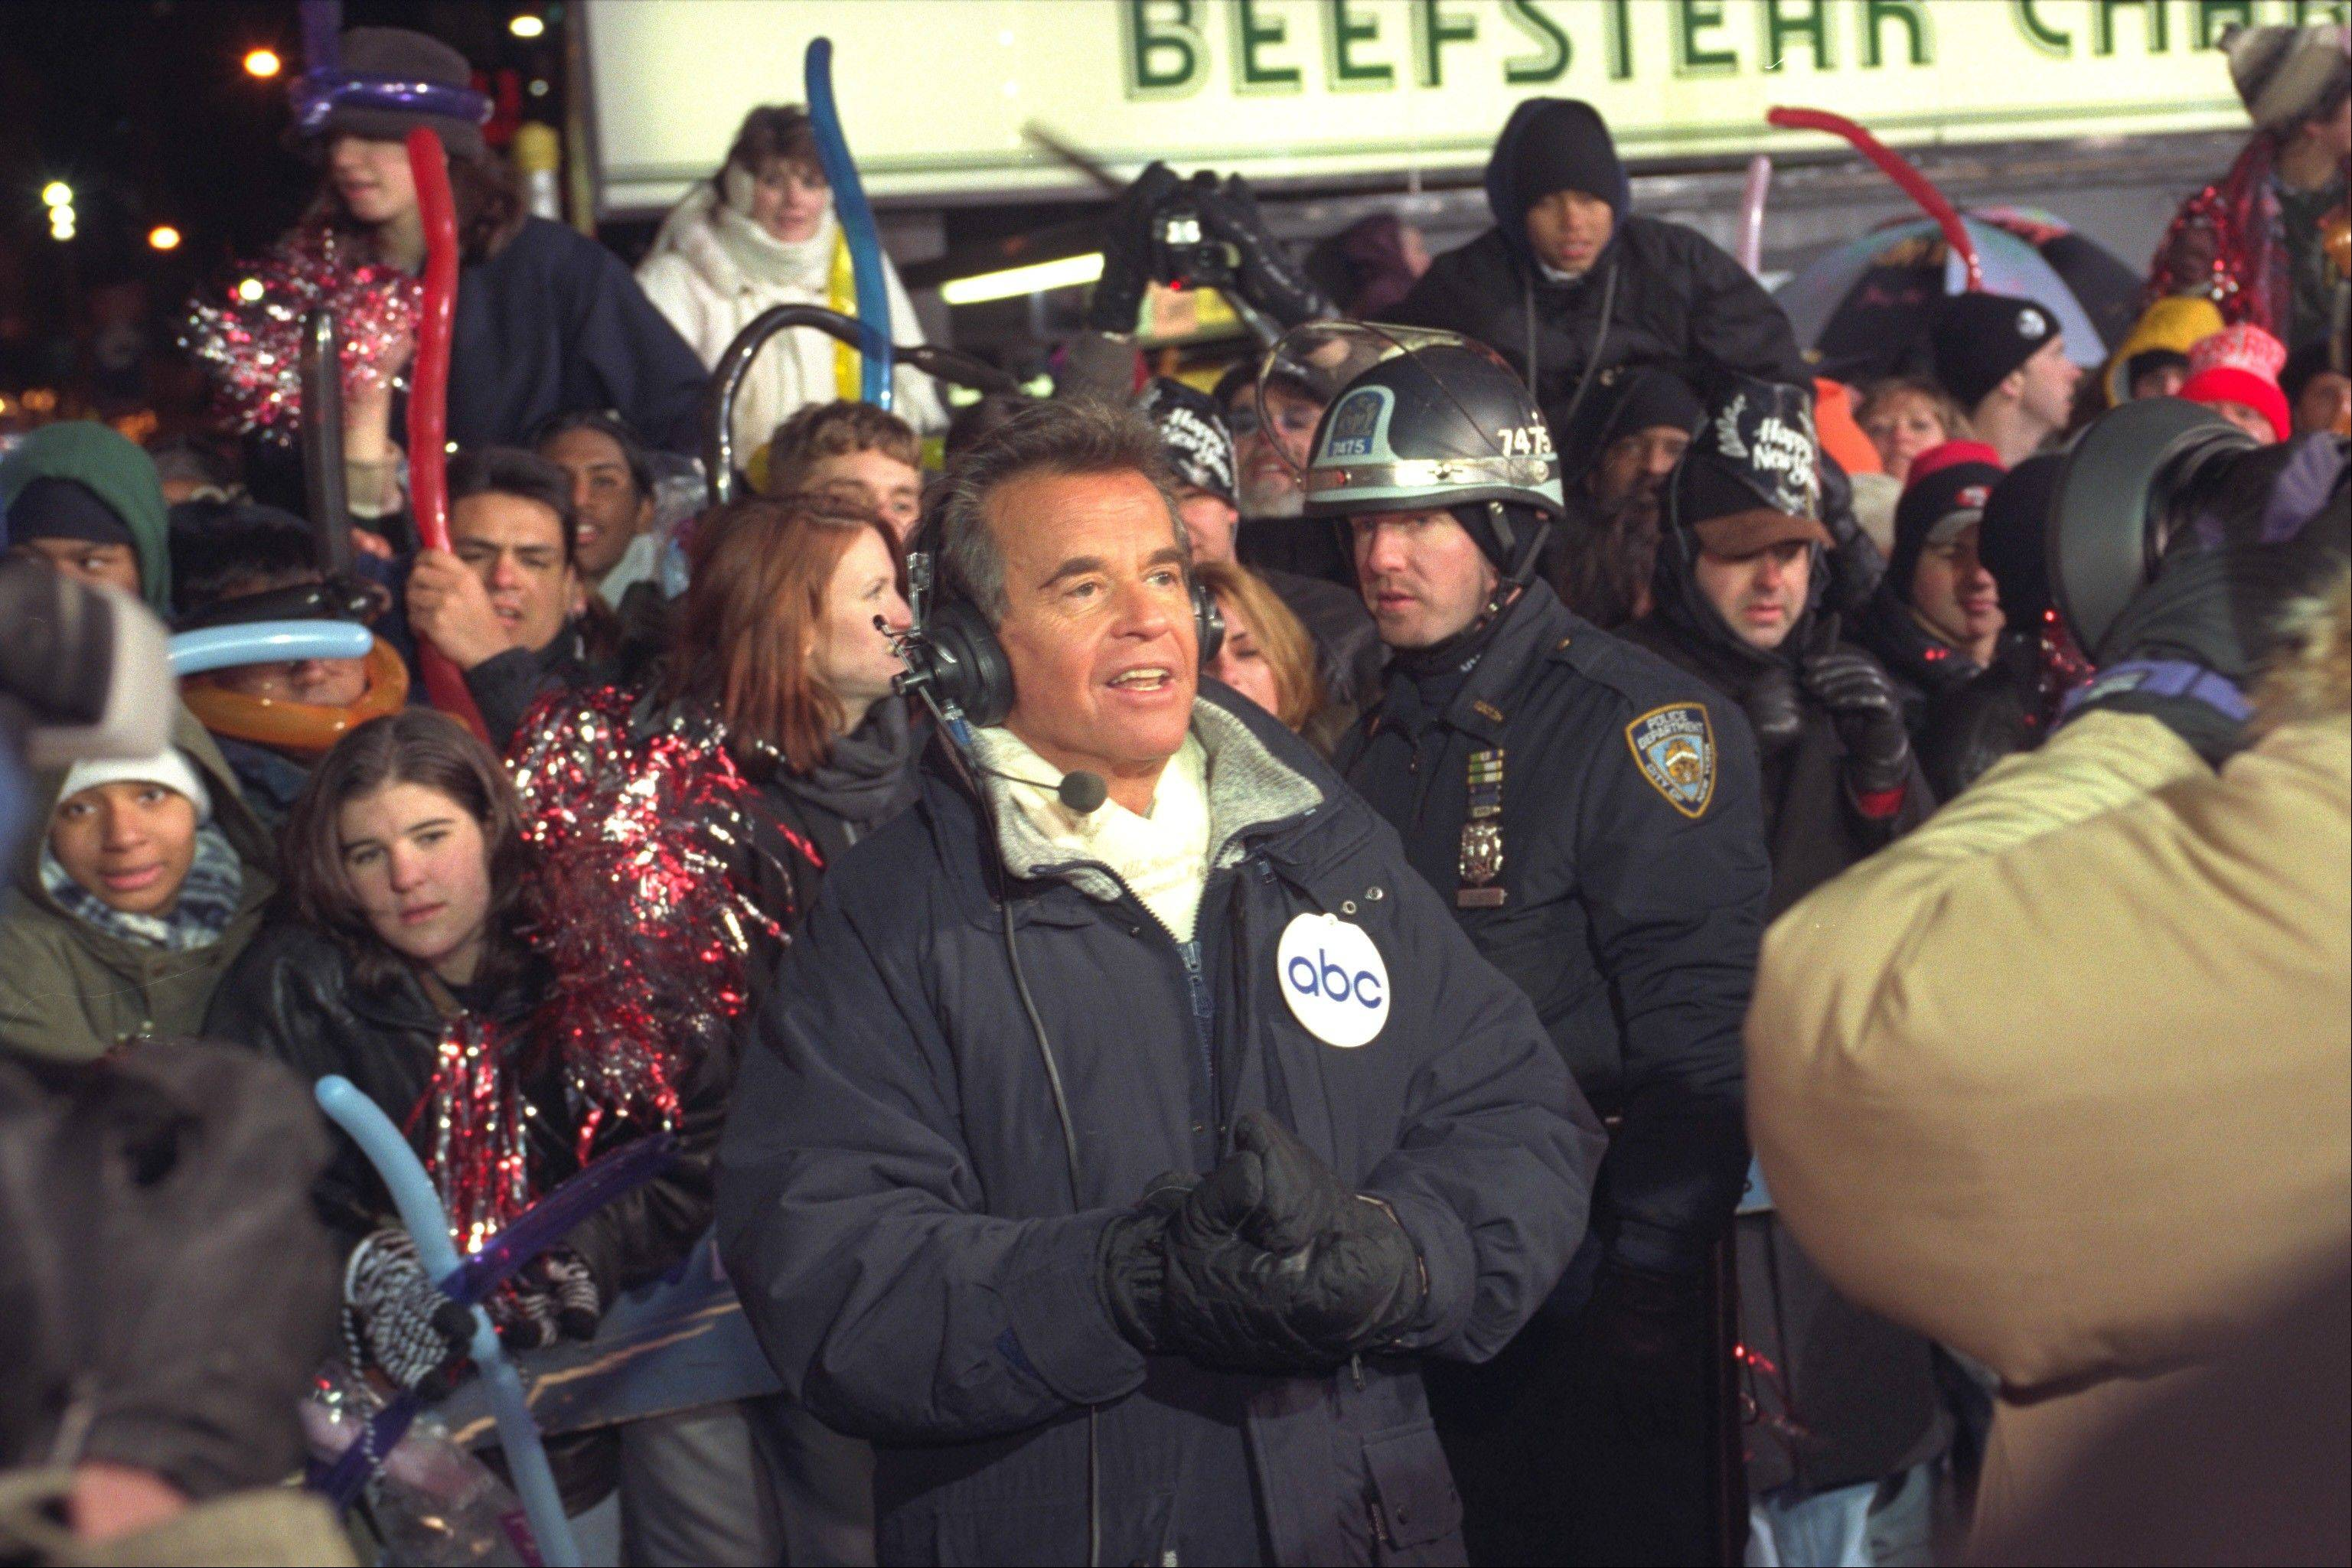 Dick Clark broadcasts during New Year's festivities from Times Square in New York in 1996. ABC is turning its first New Year's Eve without Dick Clark partly into a celebration of the show biz impresario's life.